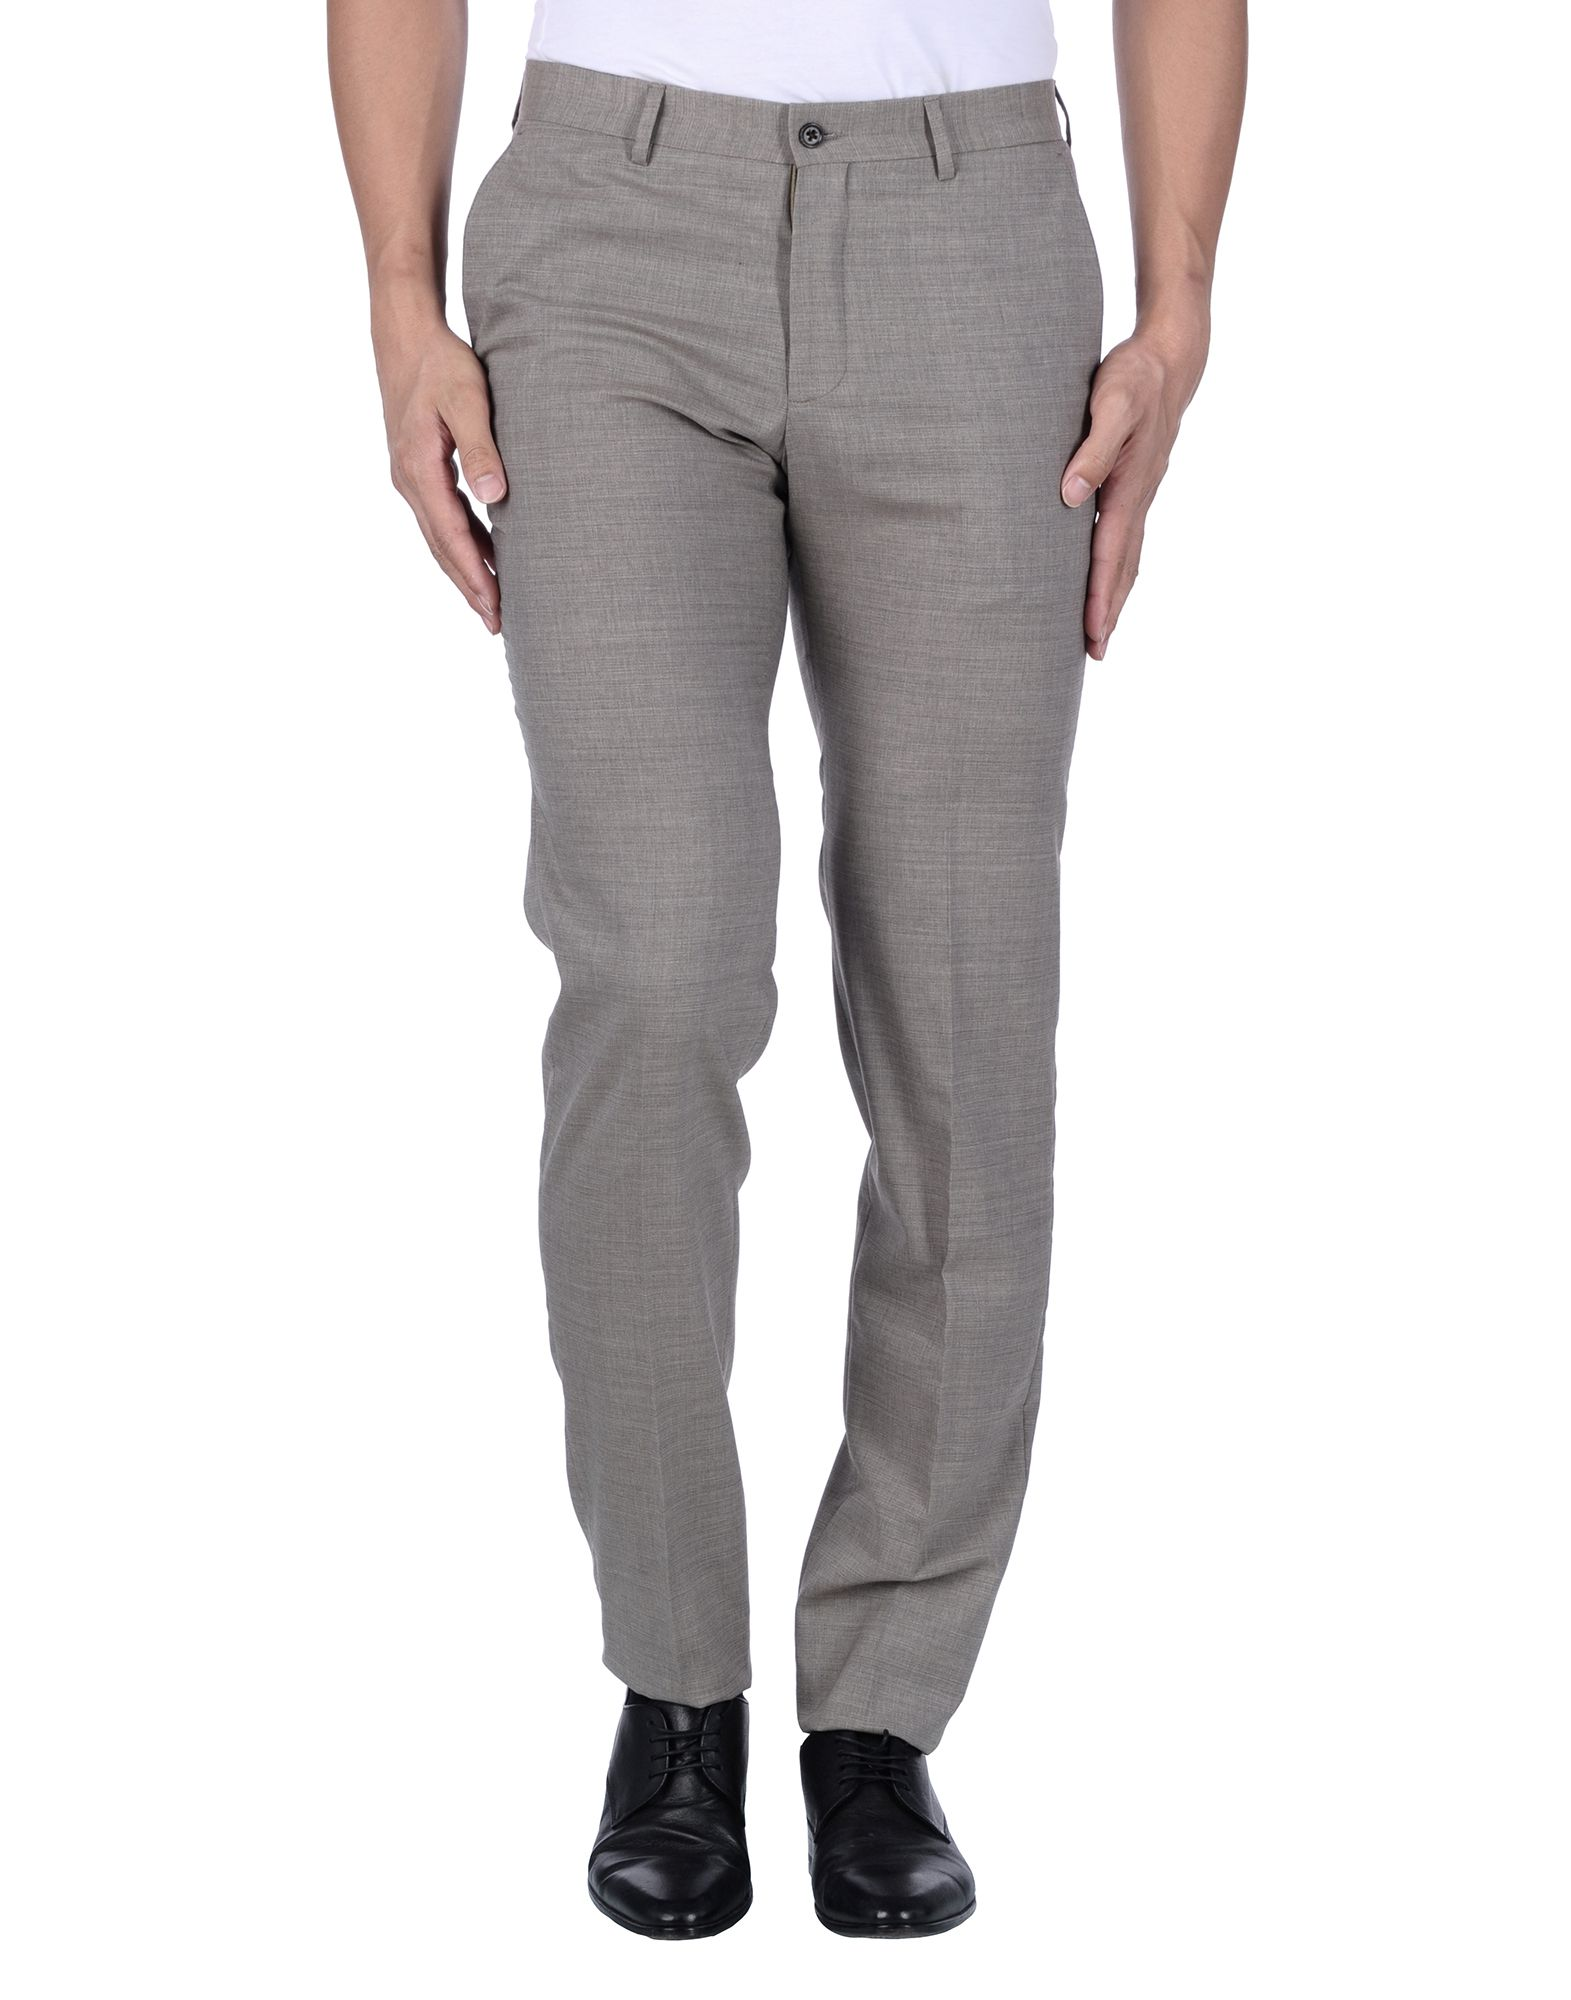 ANDREA INCONTRI Casual Pants in Grey